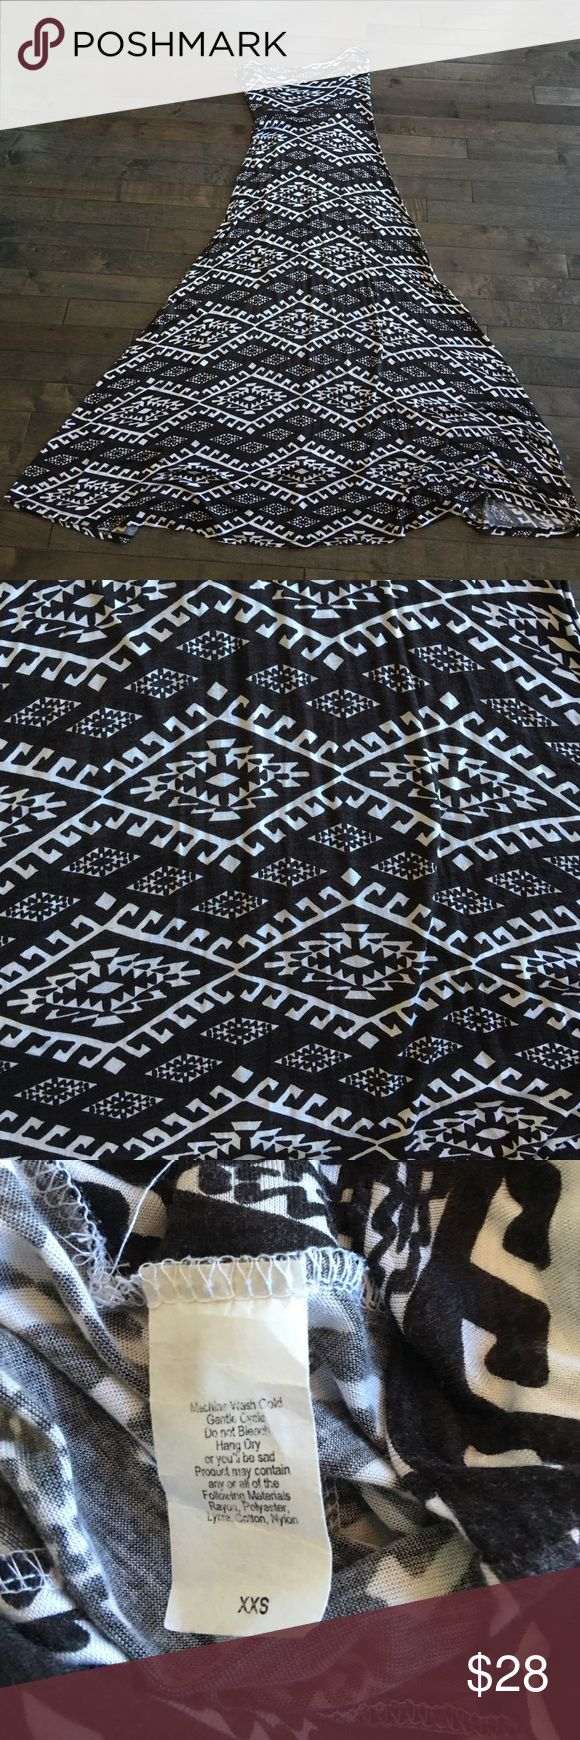 Lularoe Tribal Maxi Skirt Like new only worn a couple times. Original LuLaRoe tag. LuLaRoe Skirts Maxi